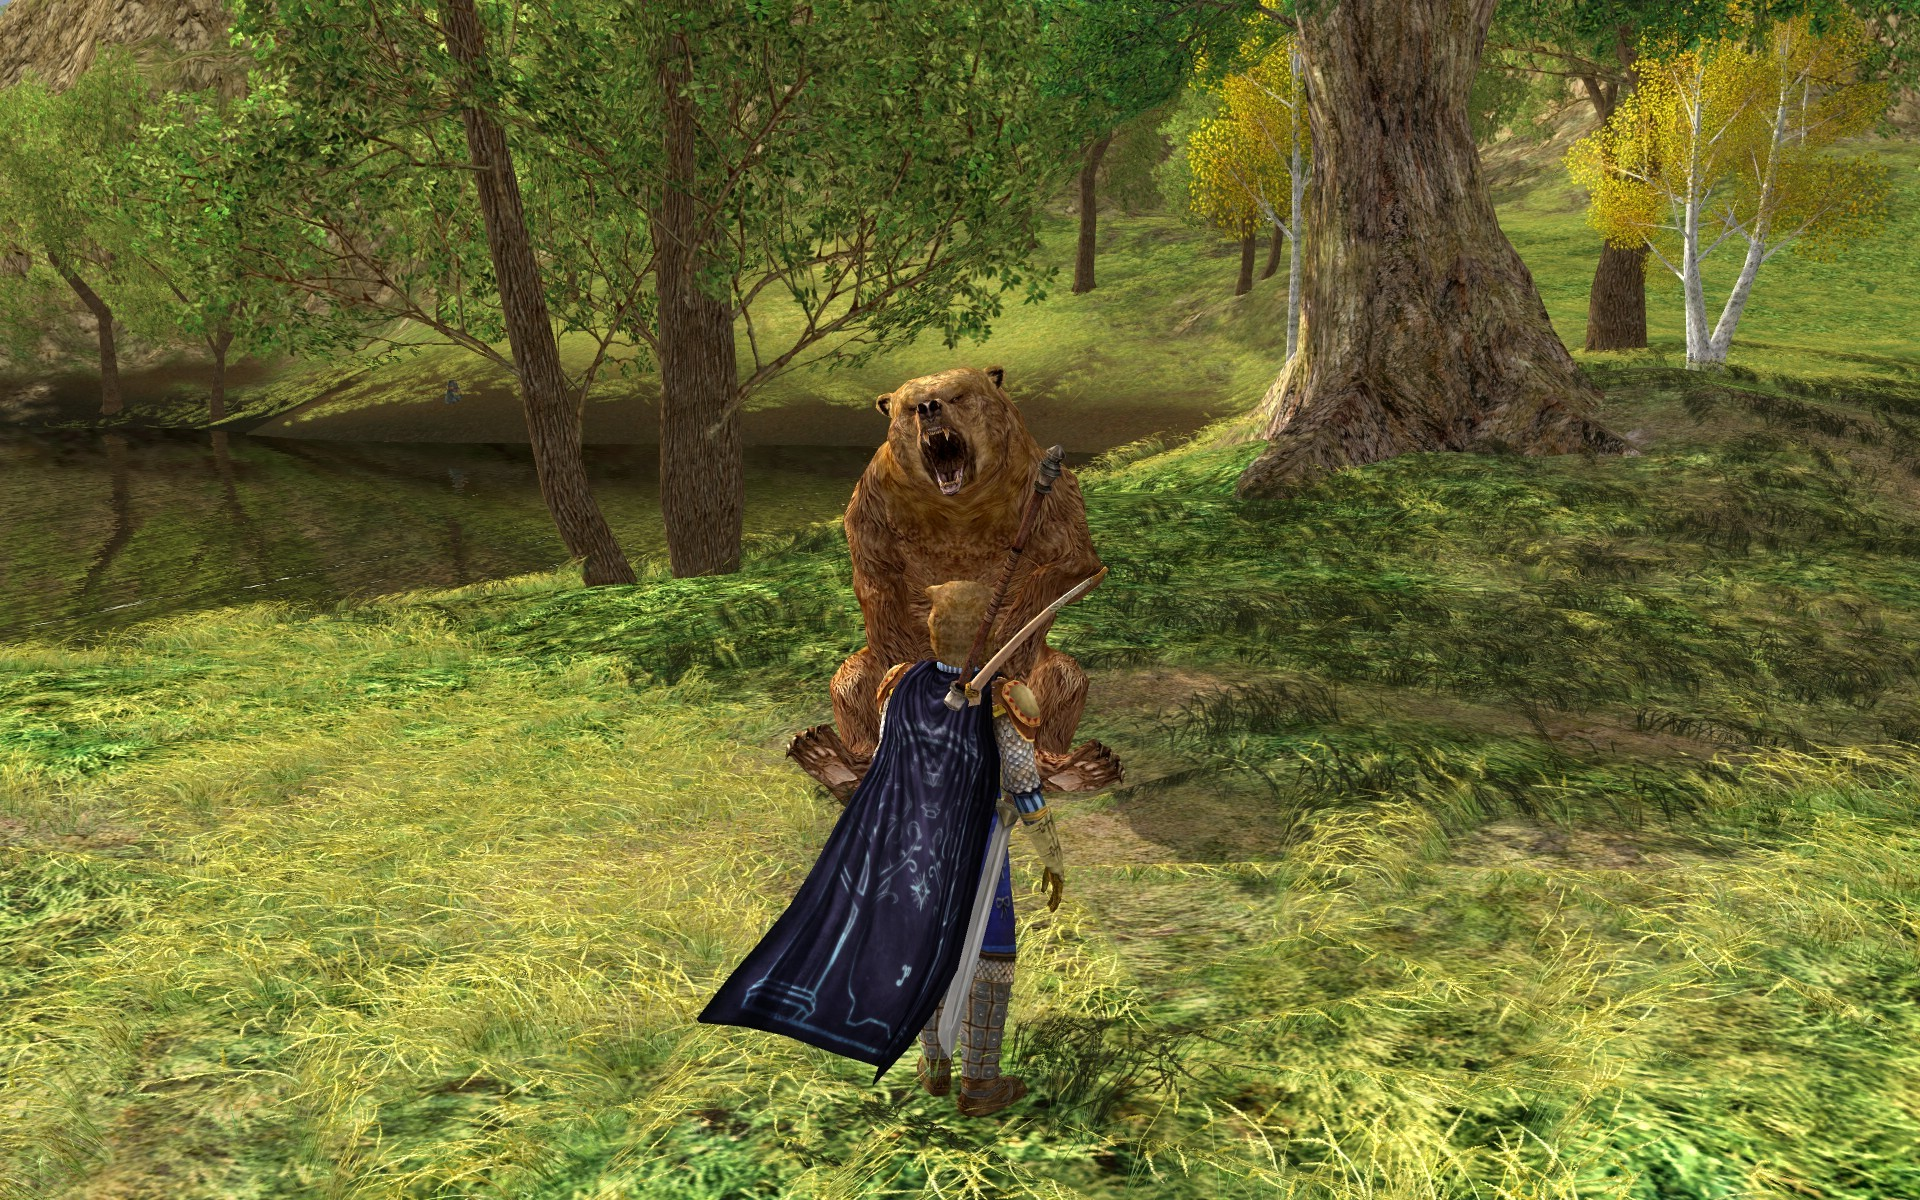 Lord of the Rings Online - about to get mauled